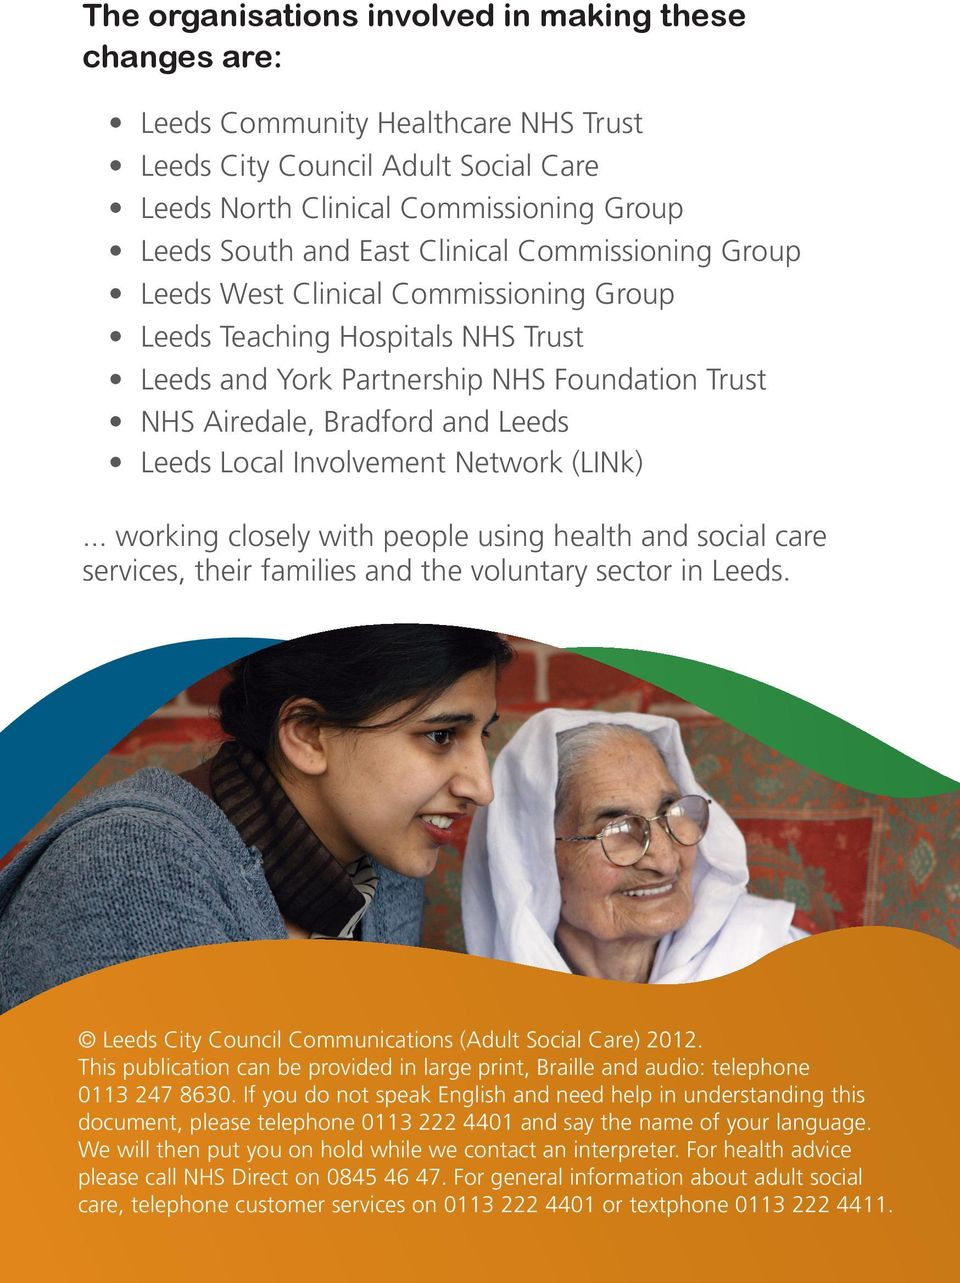 Involvement Network (LINk)... working closely with people using health and social care services, their families and the voluntary sector in Leeds.